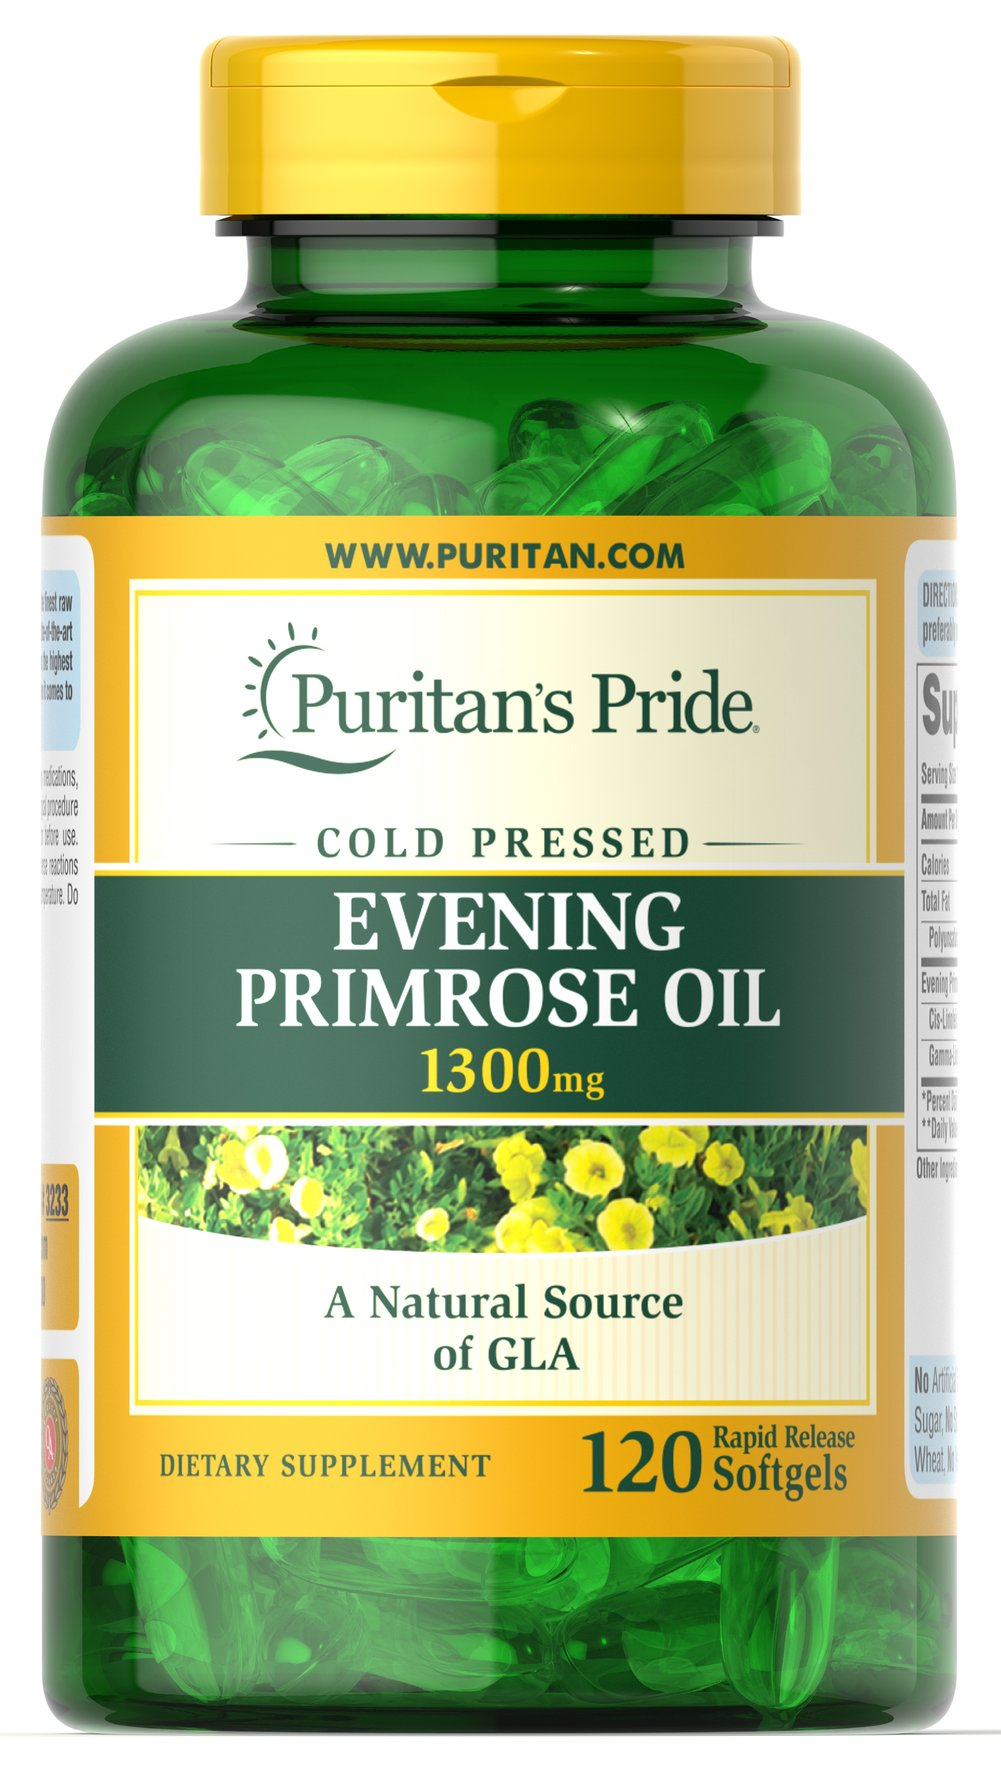 Evening Primrose Oil 1300 mg with GLA <p>For centuries, EPO has been used to provide nutritional support for women with premenstrual syndrome (PMS); it may also play a role in promoting smooth, healthy-looking skin.**</p><p>These easy-to-swallow softgels are a natural source of GLA (Gamma Linolenic Acid). Our EPO contains one of the most biologically active forms of this Omega-6 fatty acid available today.</p>  120 Softgels 1300 mg $31.99